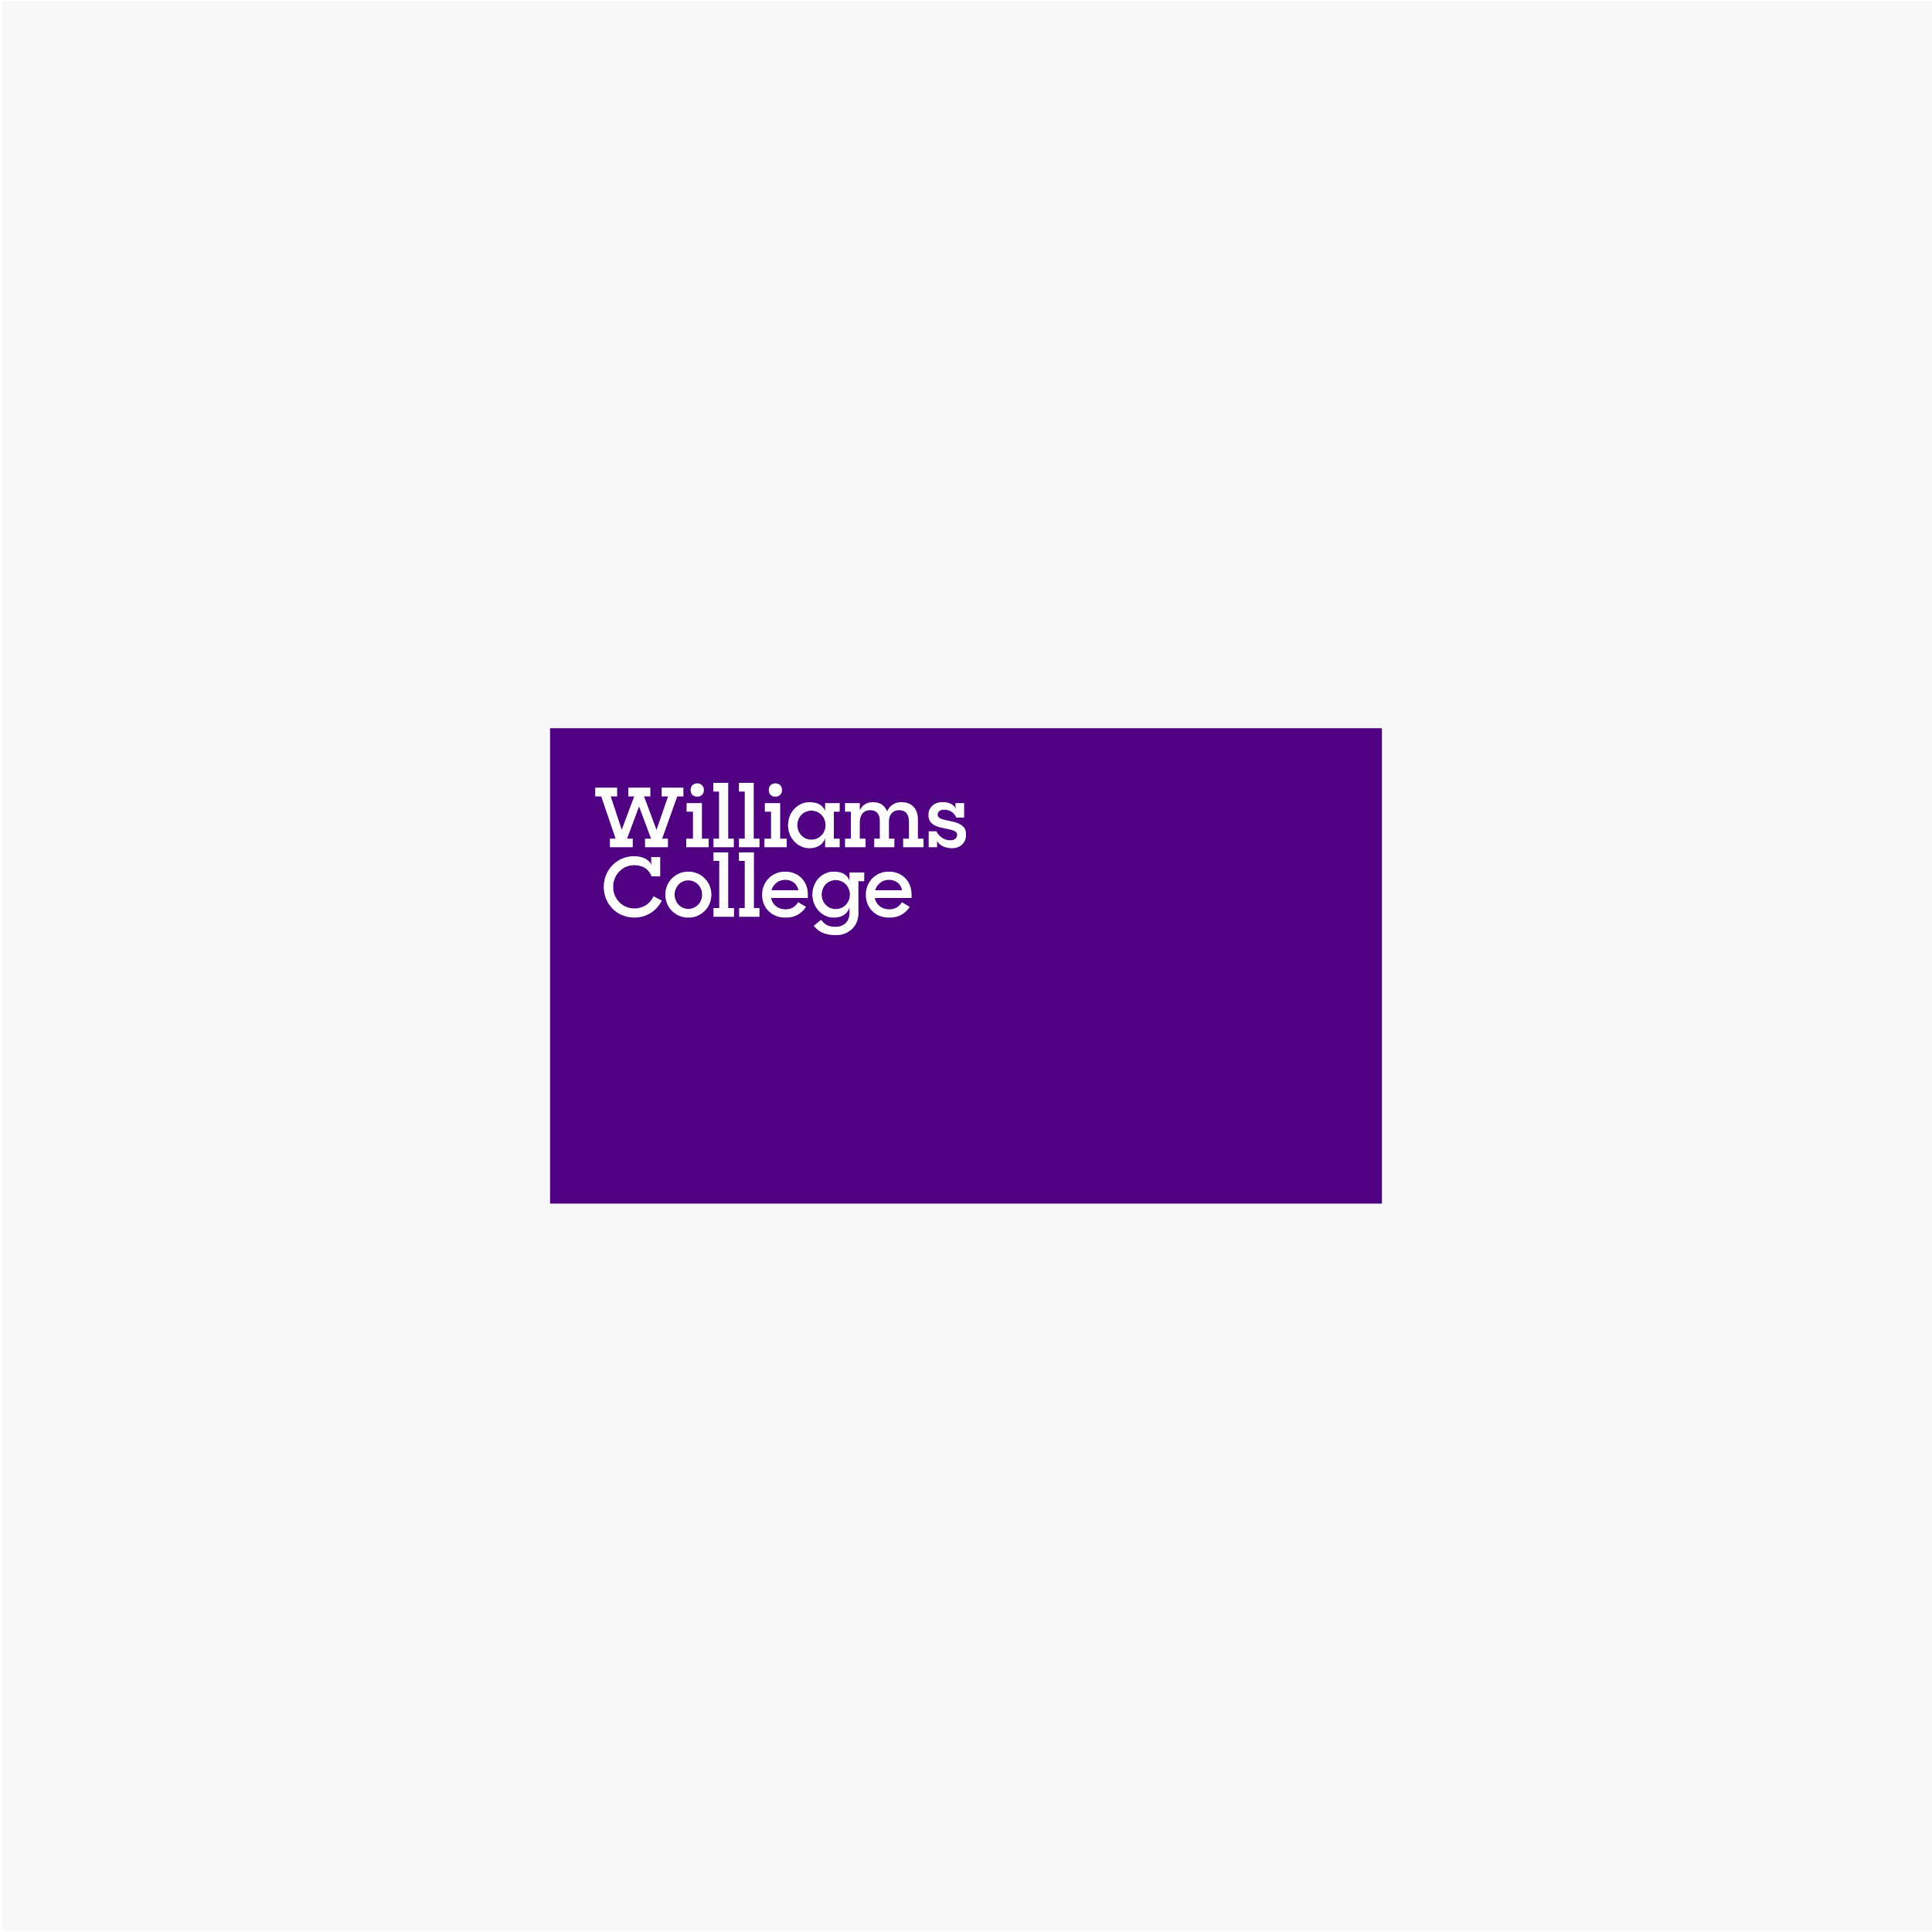 williams_guidelines_square